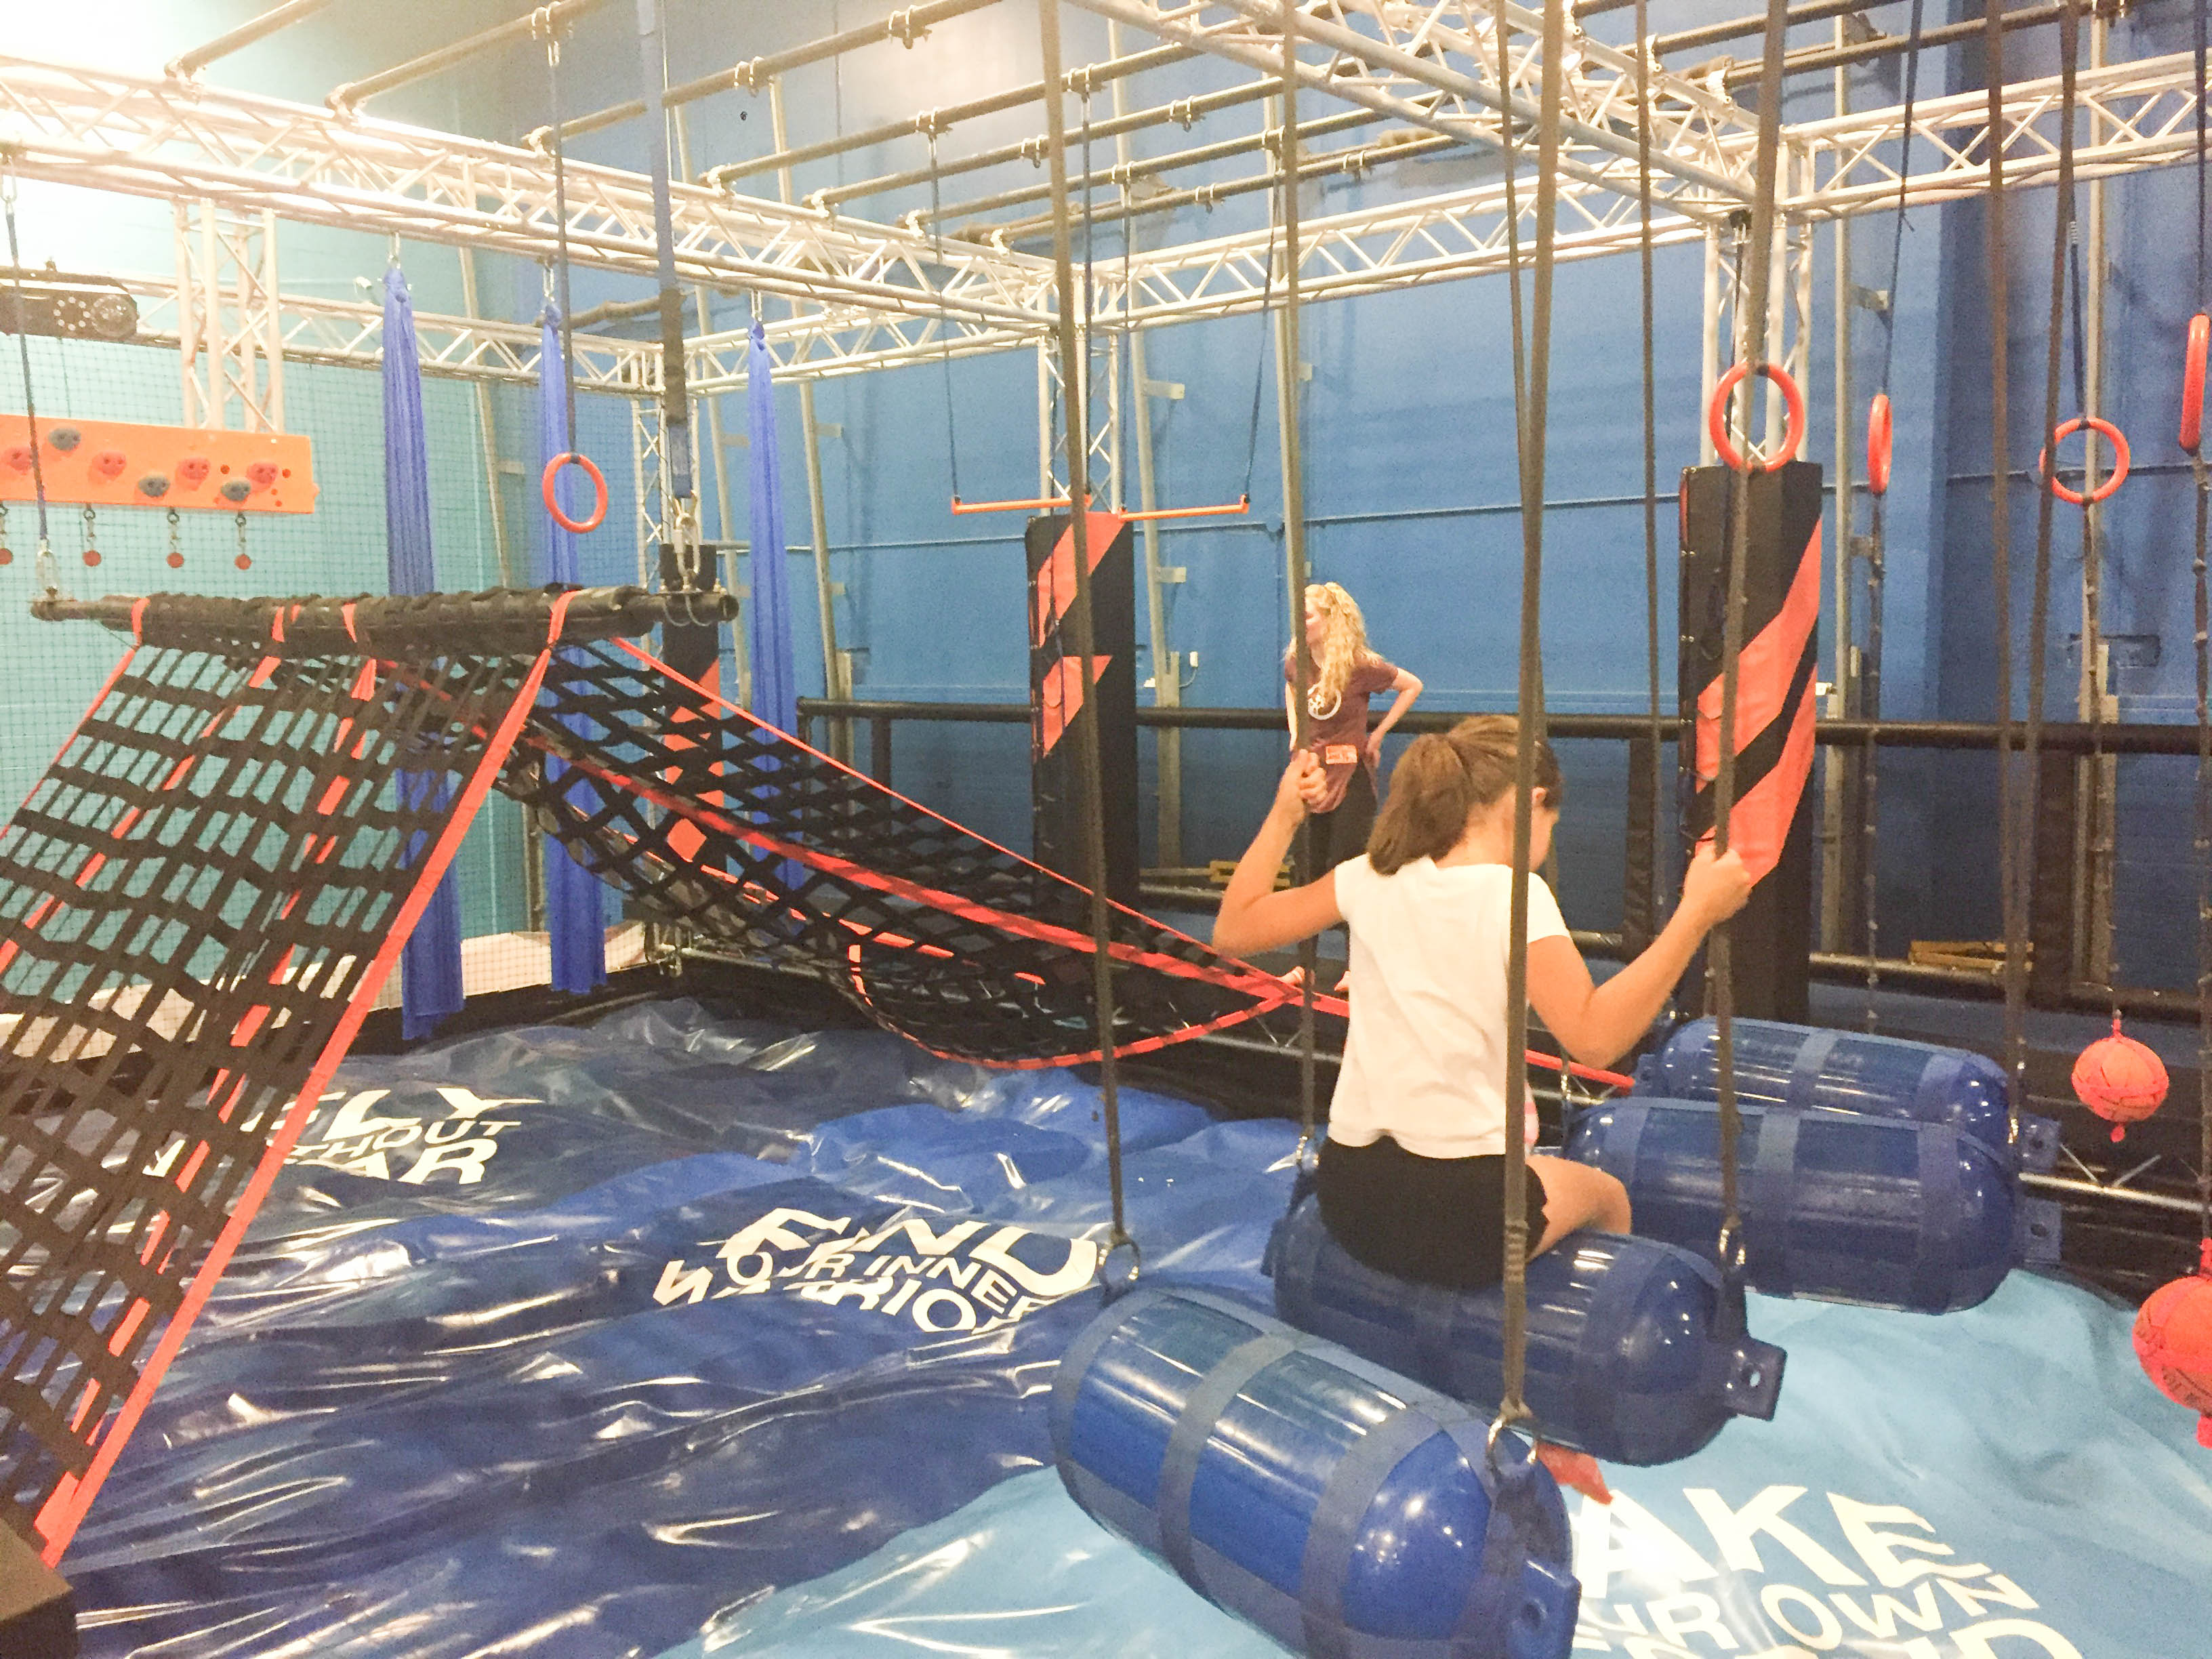 Sky Zone Trampoline Park Birthday Party;Ultimate Warrior Course ; Livin' Life with Style